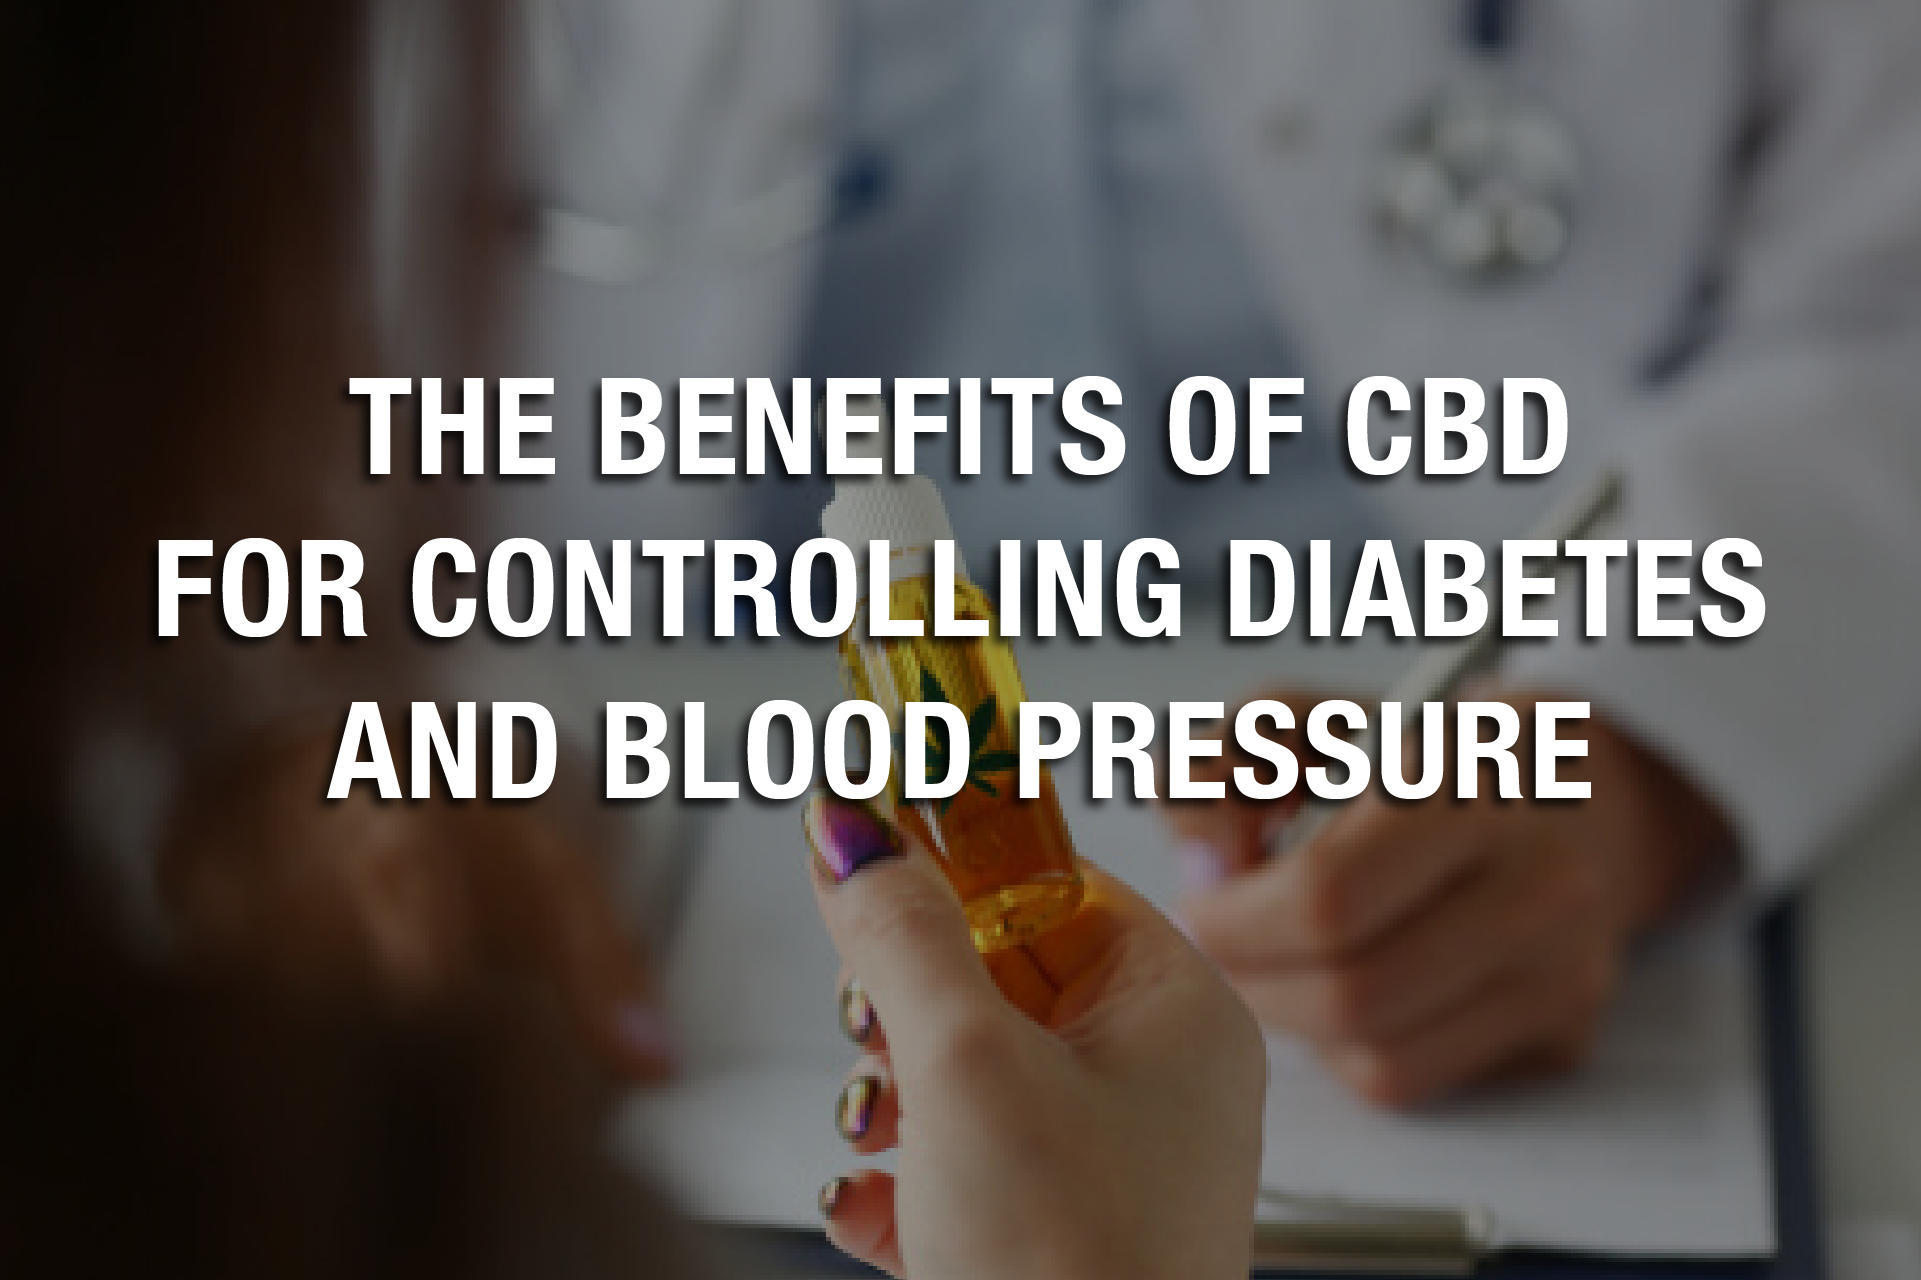 The Benefits of CBD for Controlling Diabetes and Blood Pressure